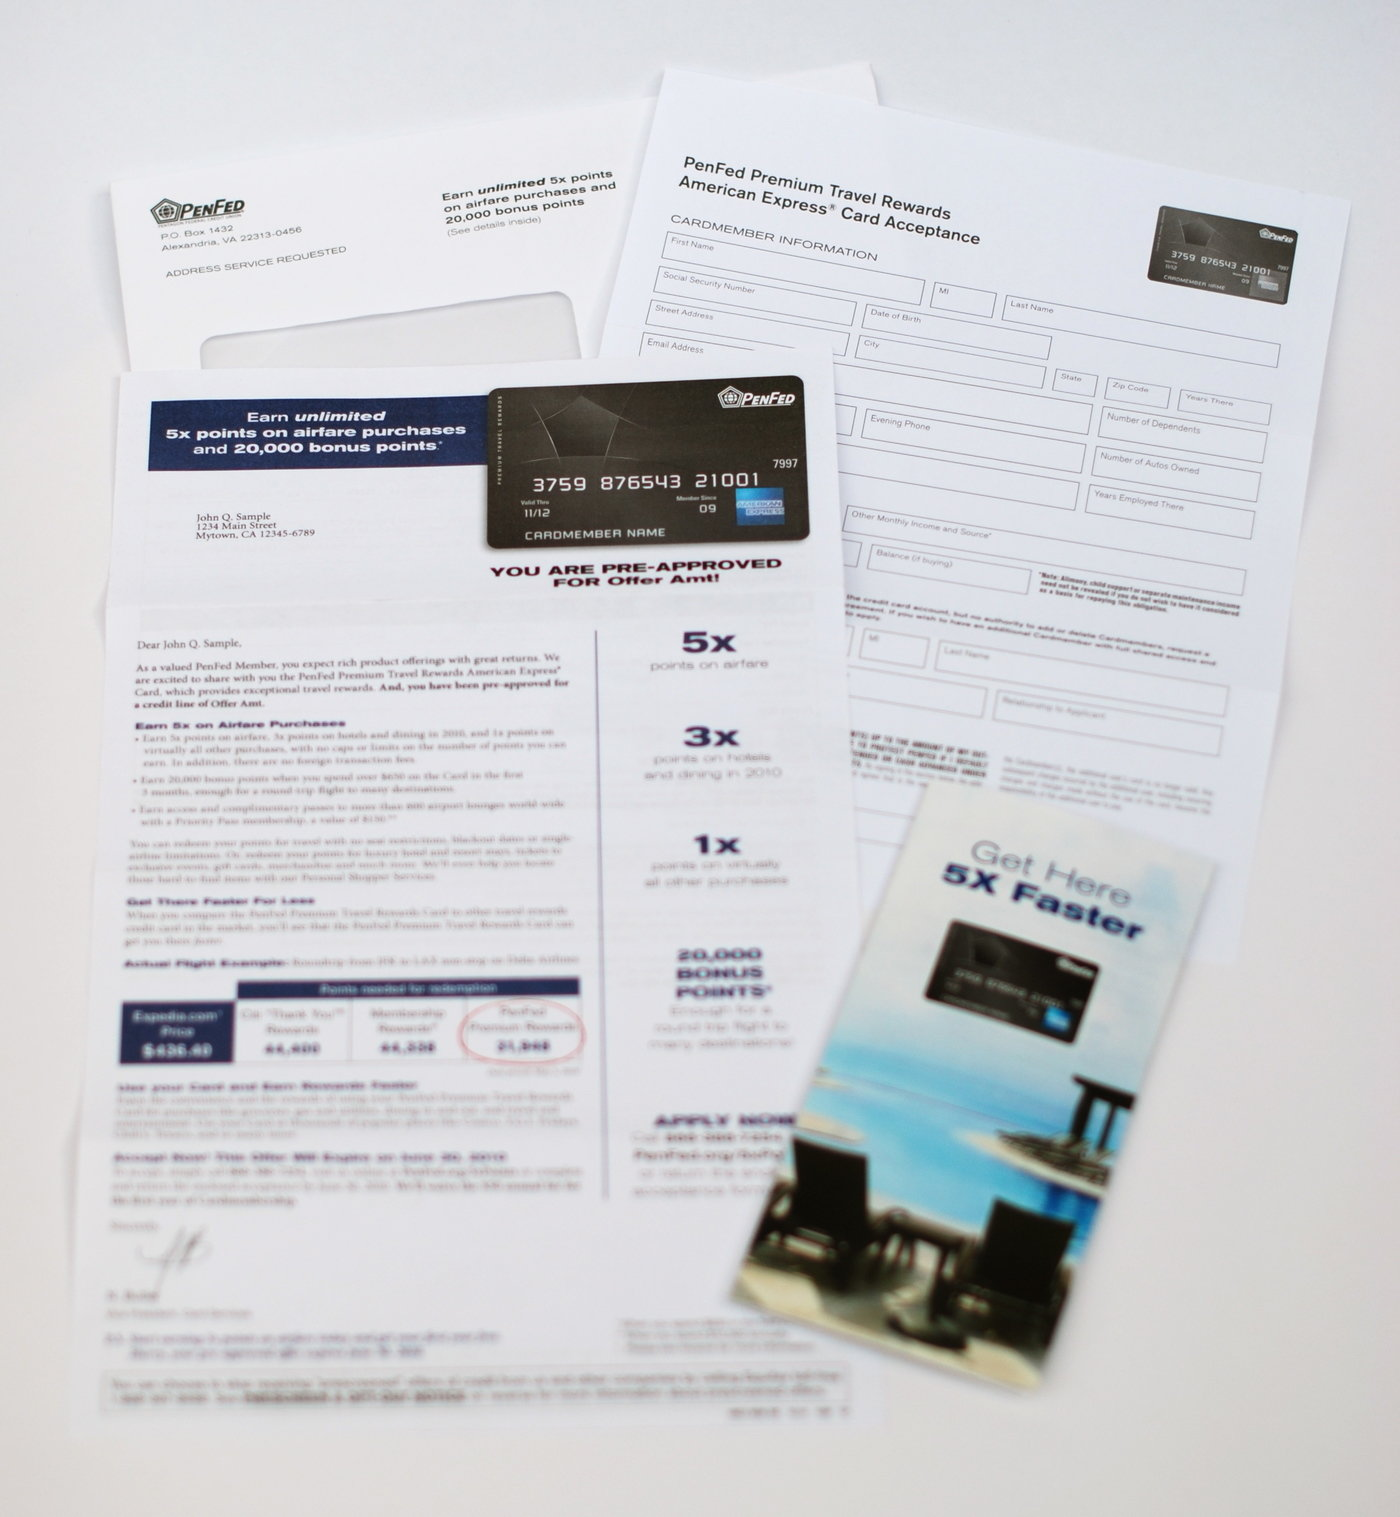 Direct Mail - PenFed Premium Travel Rewards American Express